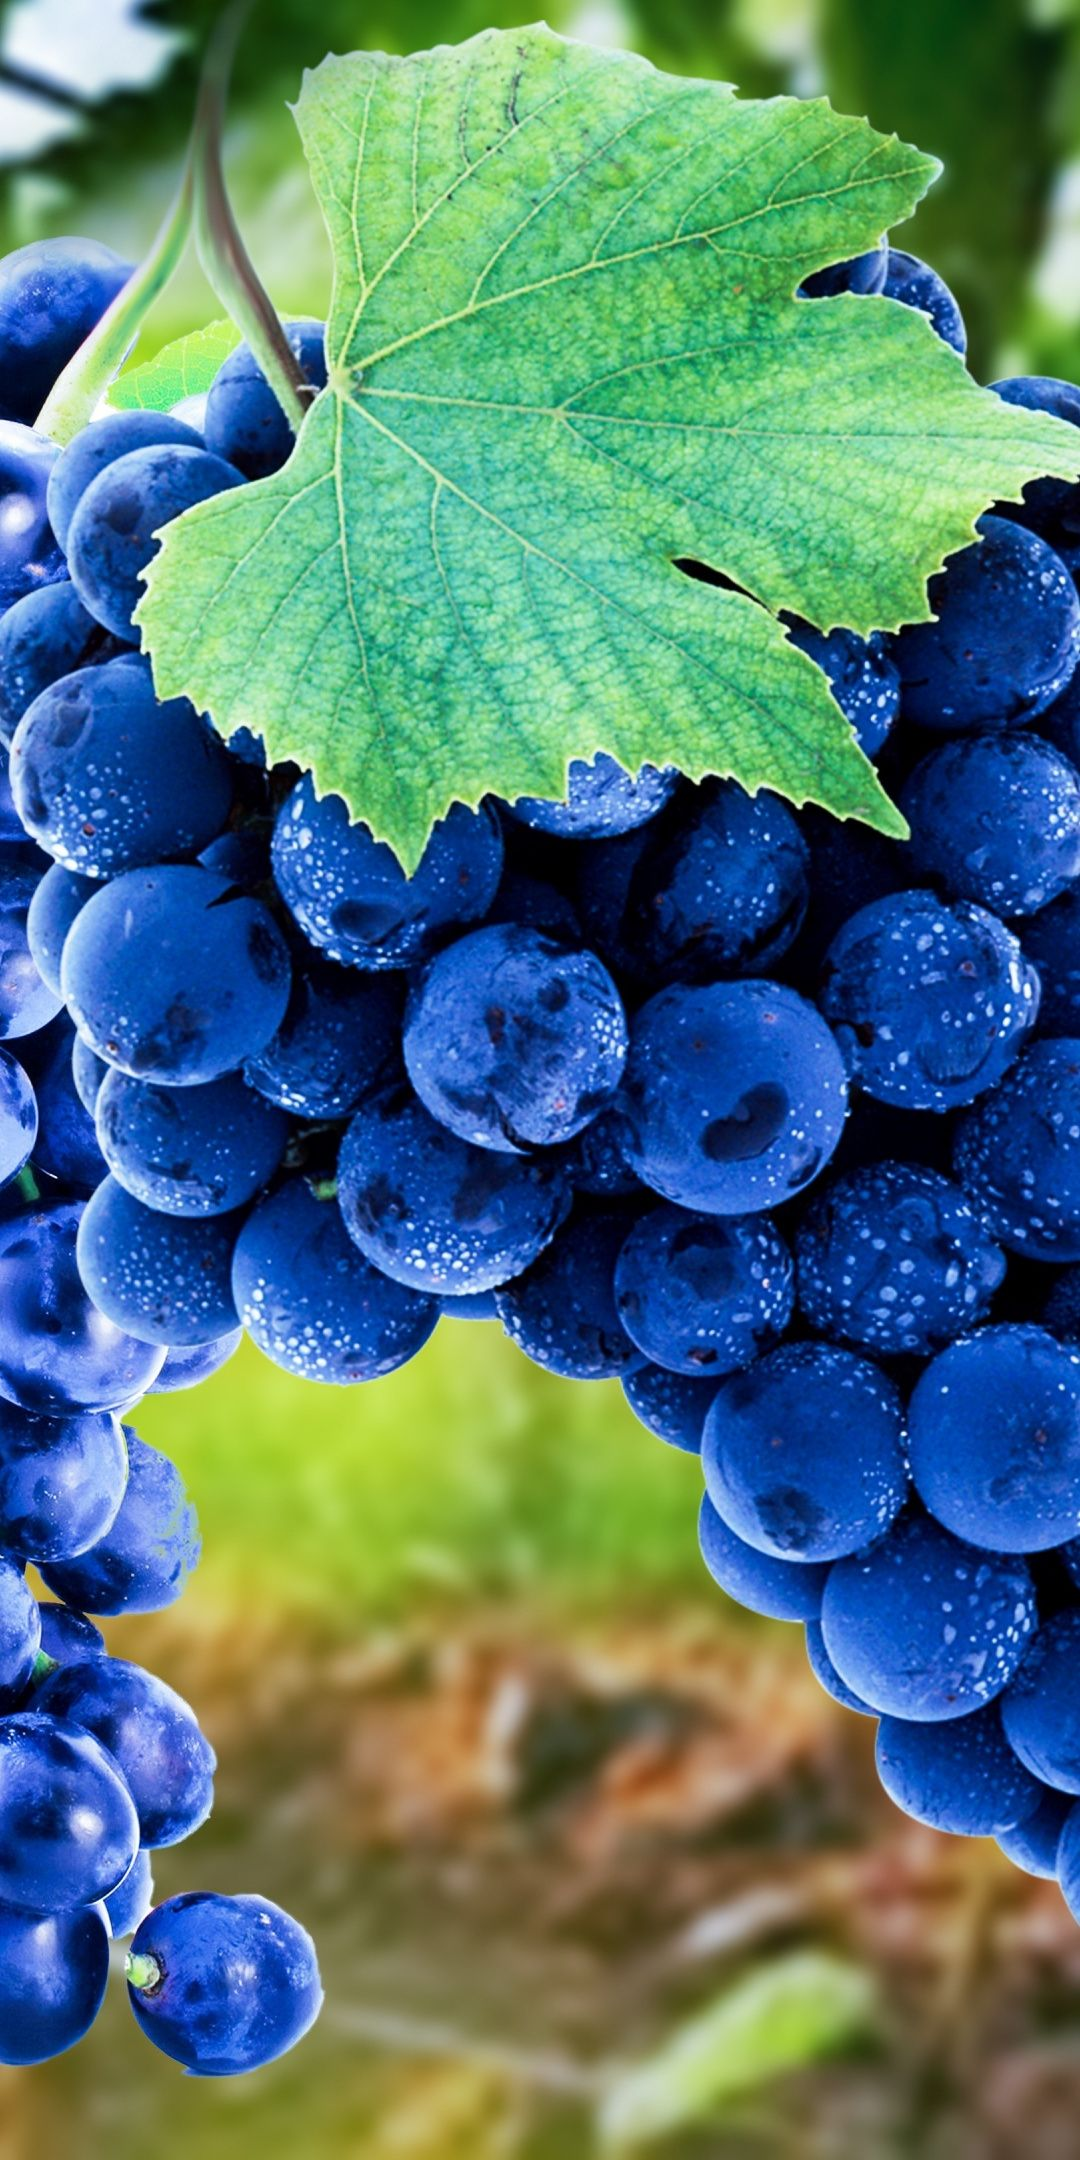 Grapes Blue Fruits Ripen 1080x2160 Wallpaper Grapes Fruit Photography Fruit Wallpaper